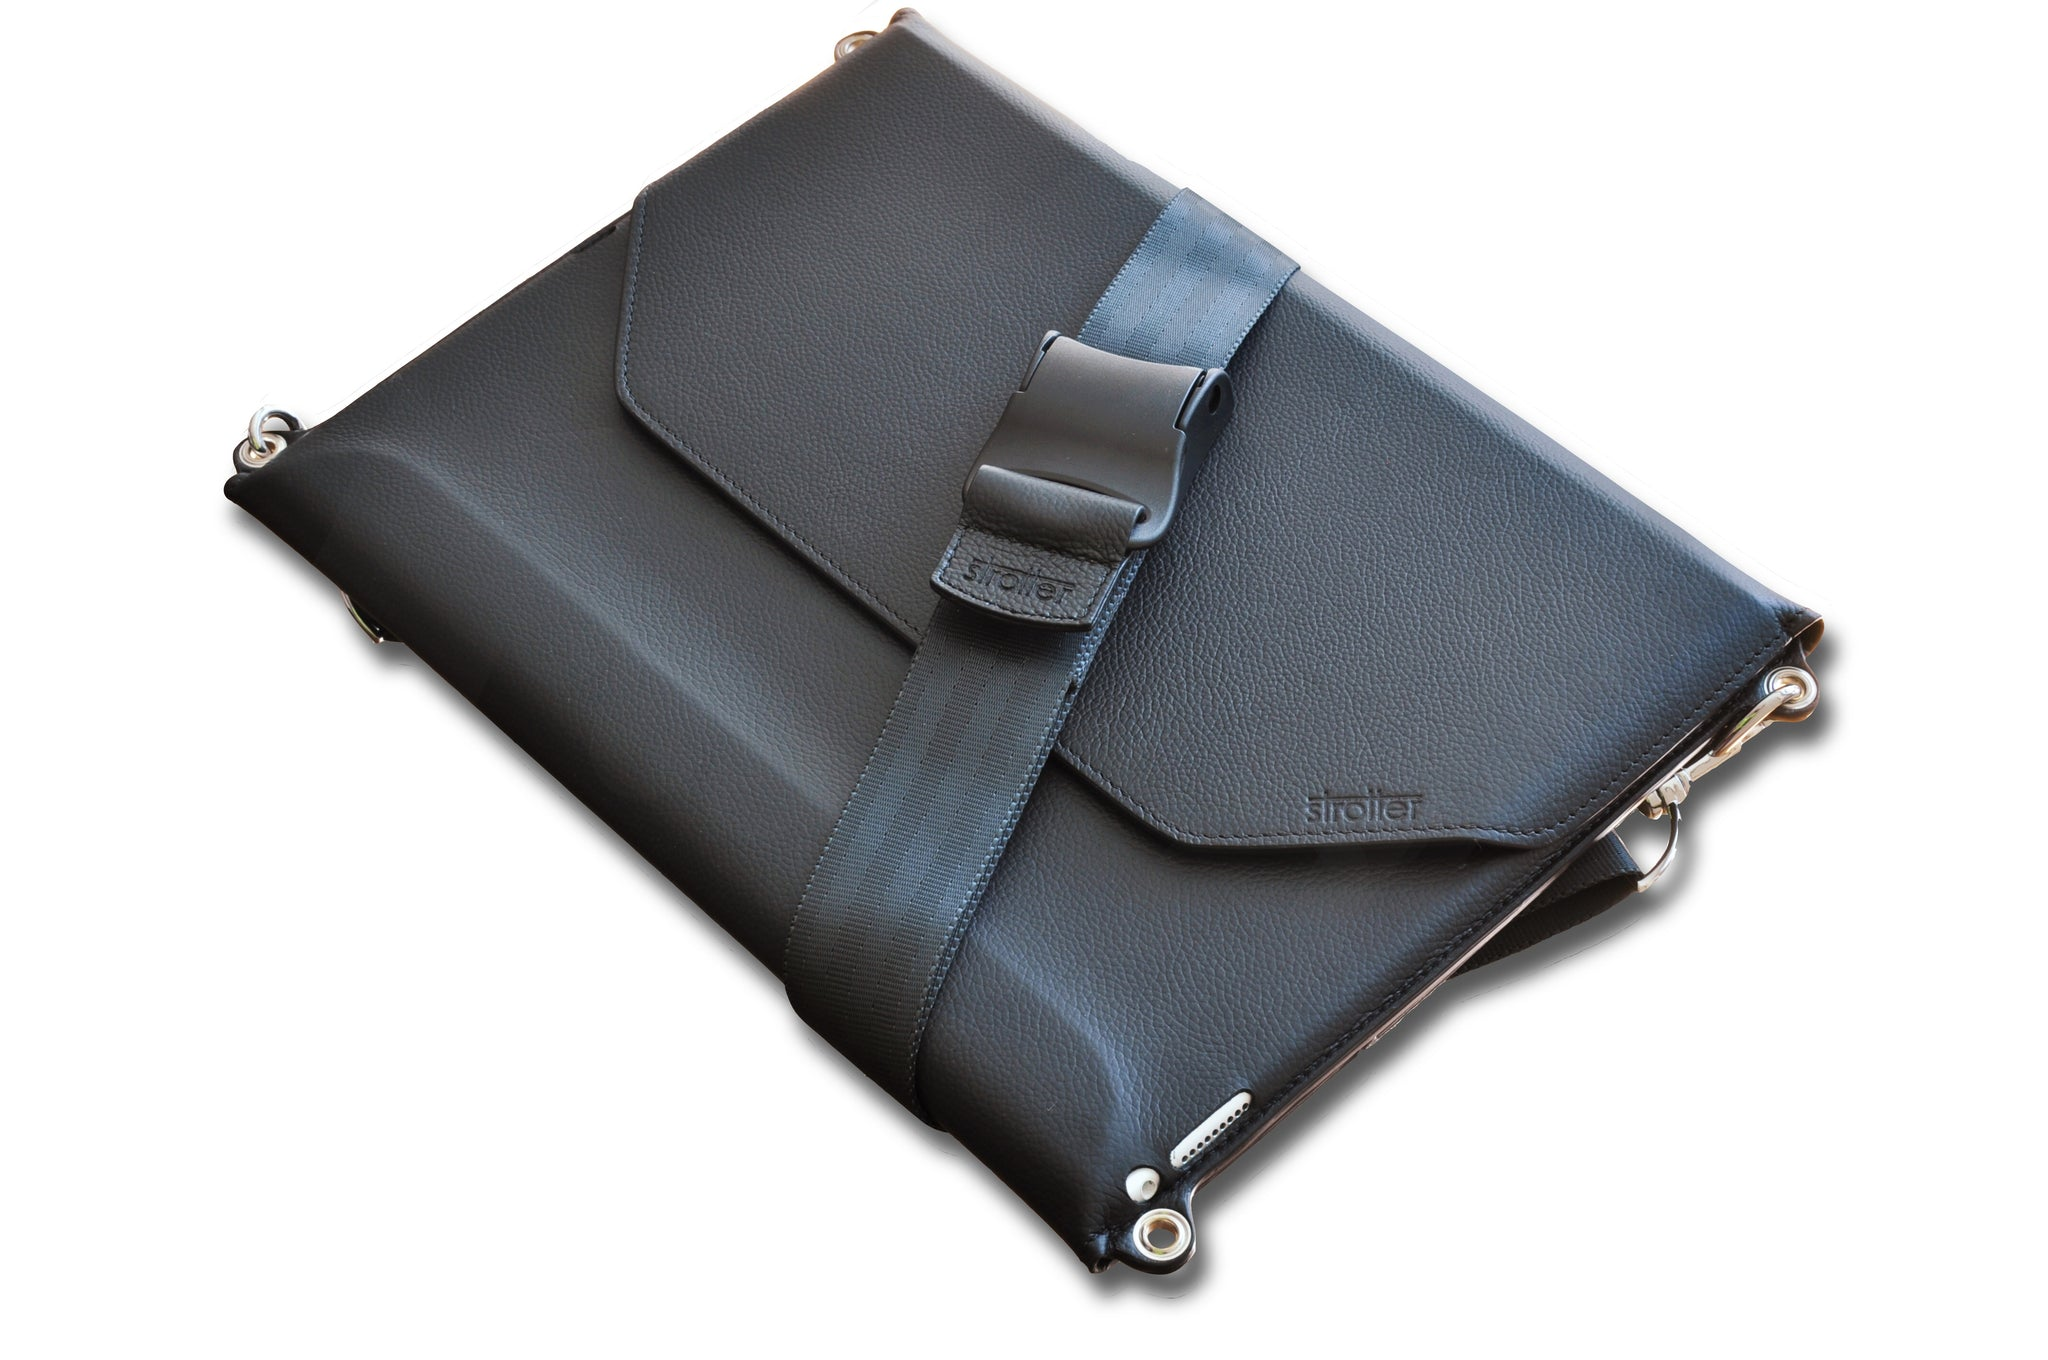 Black leather case with shoulder strap for iPad Pro 12.9